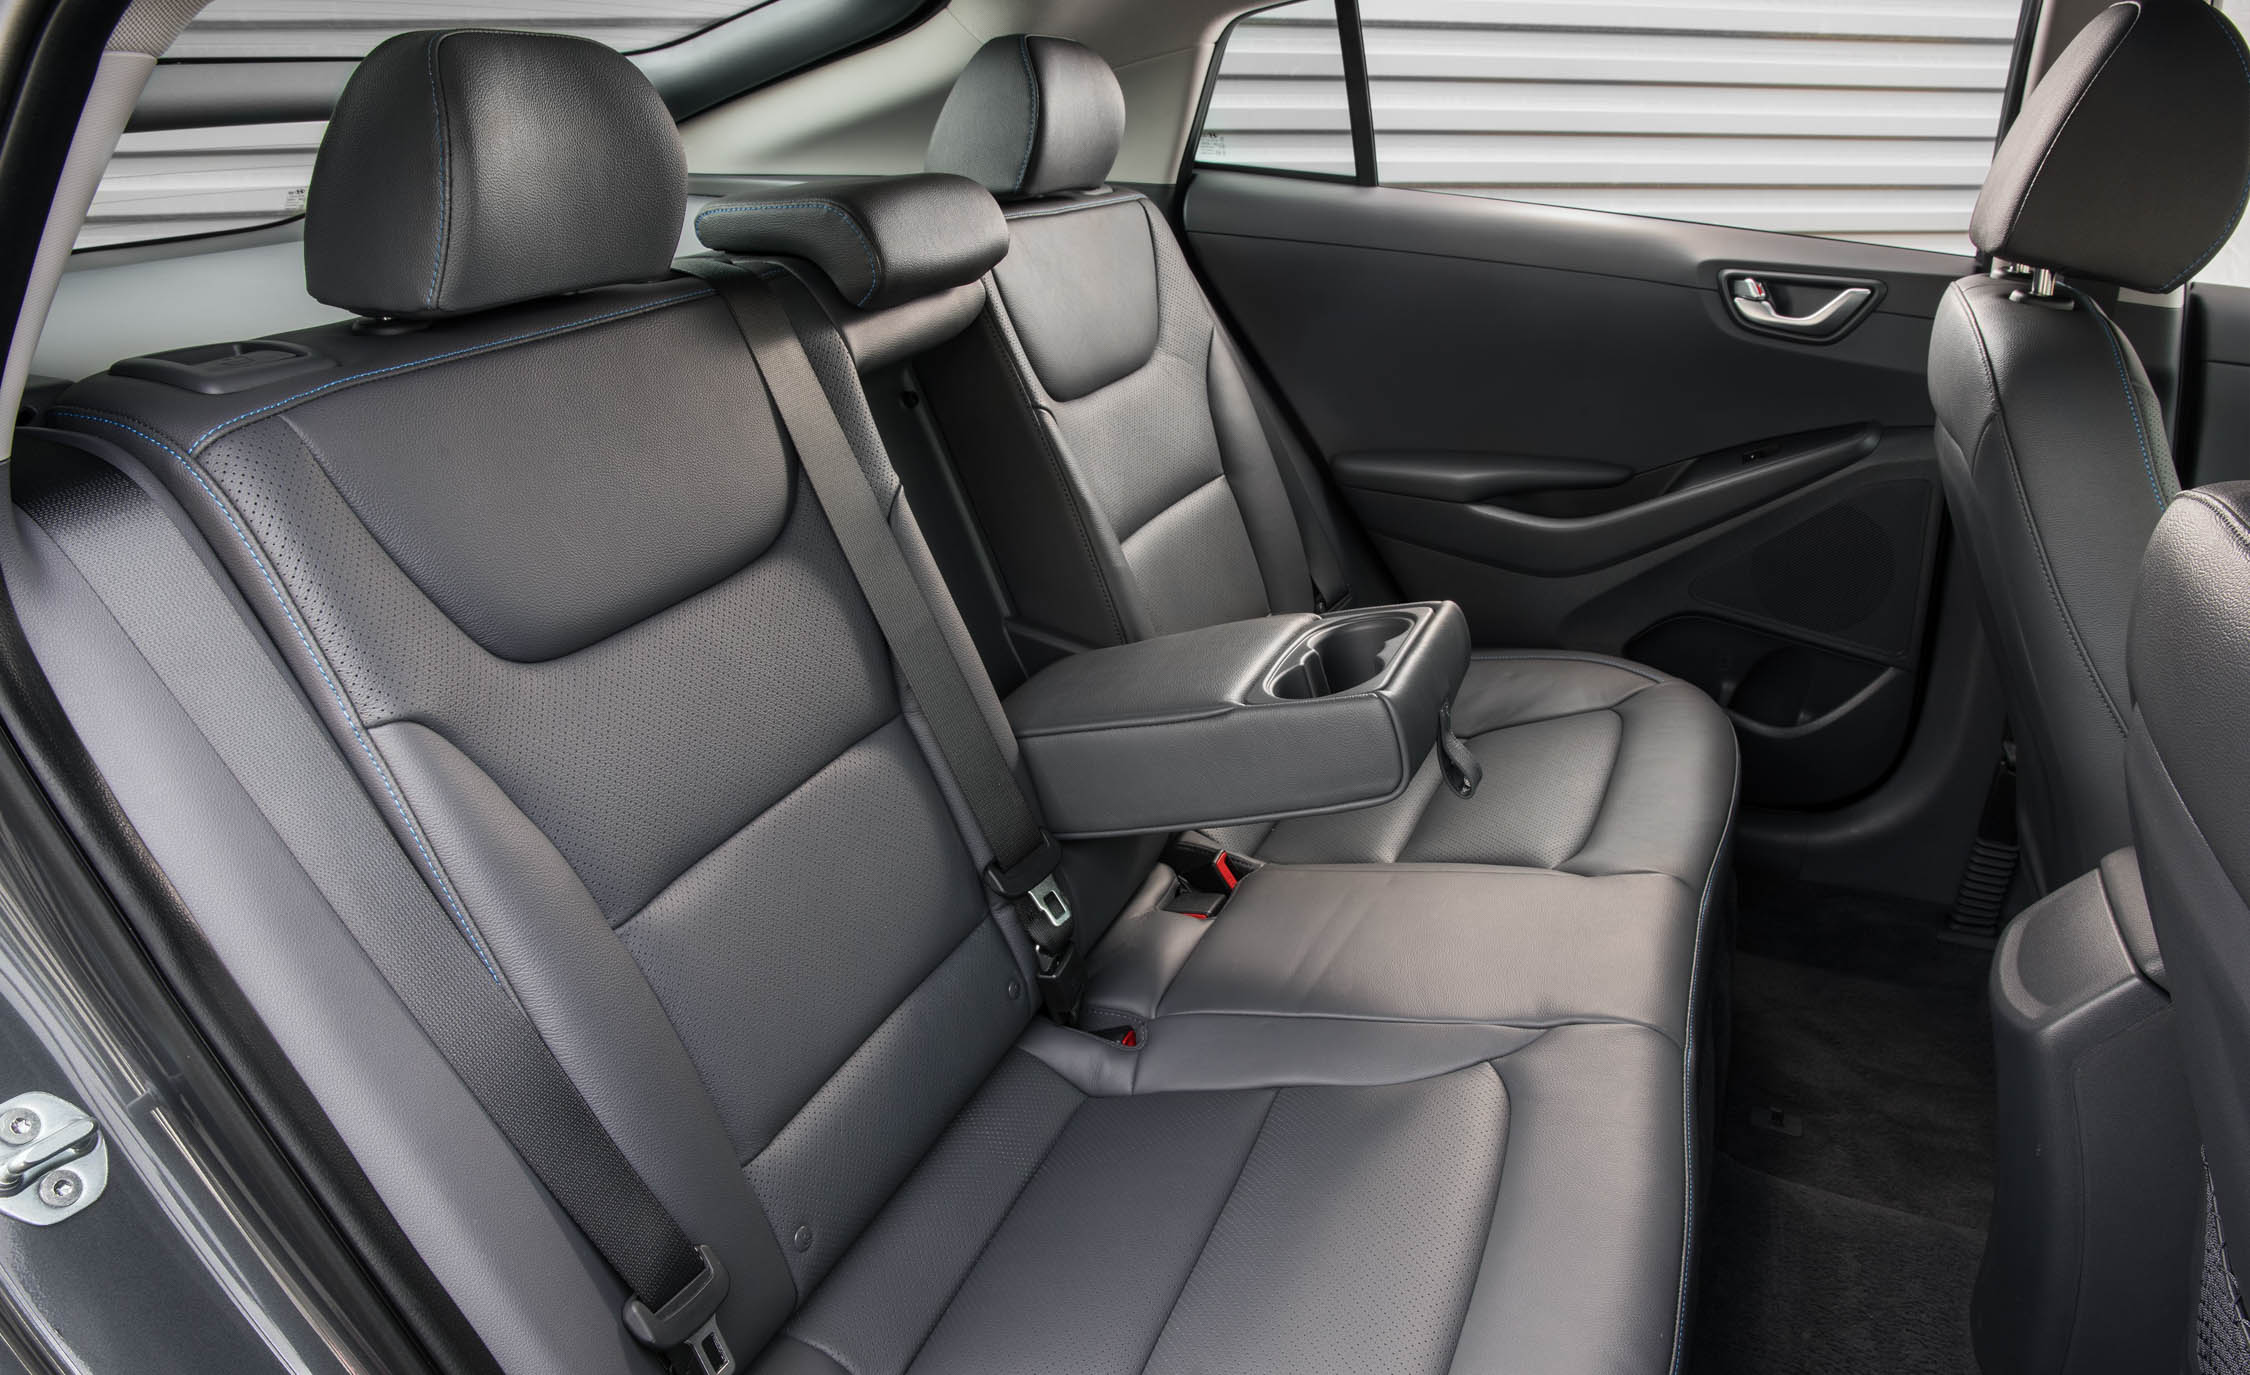 2017 Hyundai Ioniq Hybrid Interior Seats Rear (Photo 51 of 67)